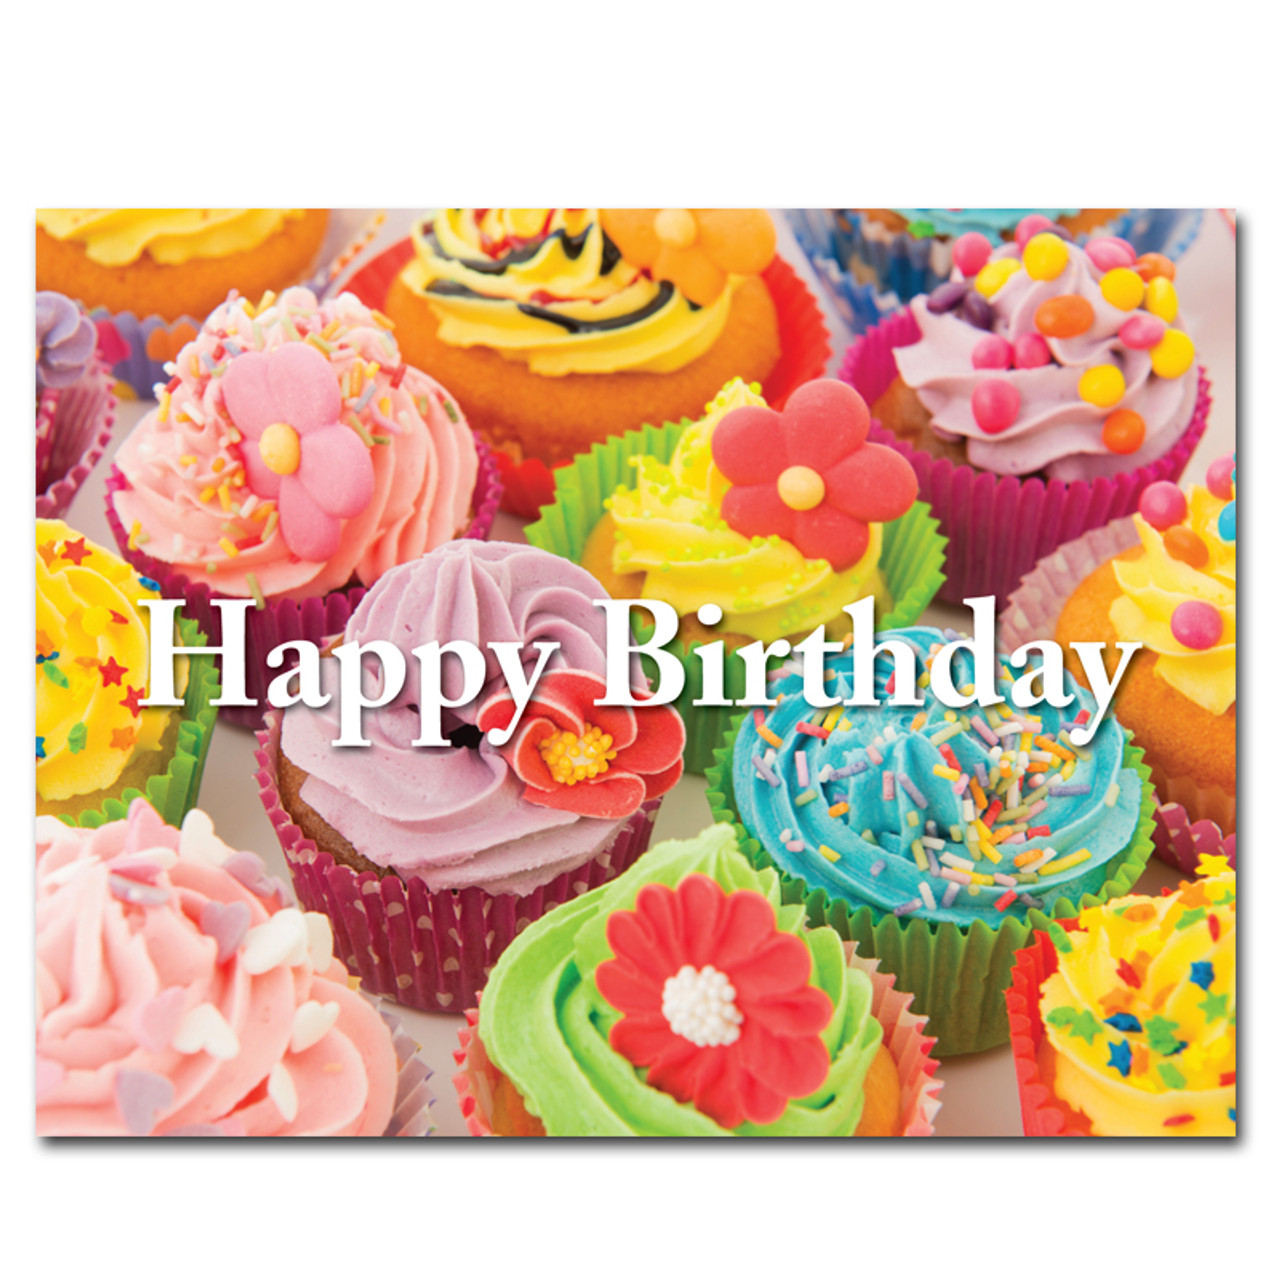 "Birthday Postcard Fancy Cupcakes is a photo of many colorful cupcakes with the words ""Happy Birthday"" in large white letters across the front."